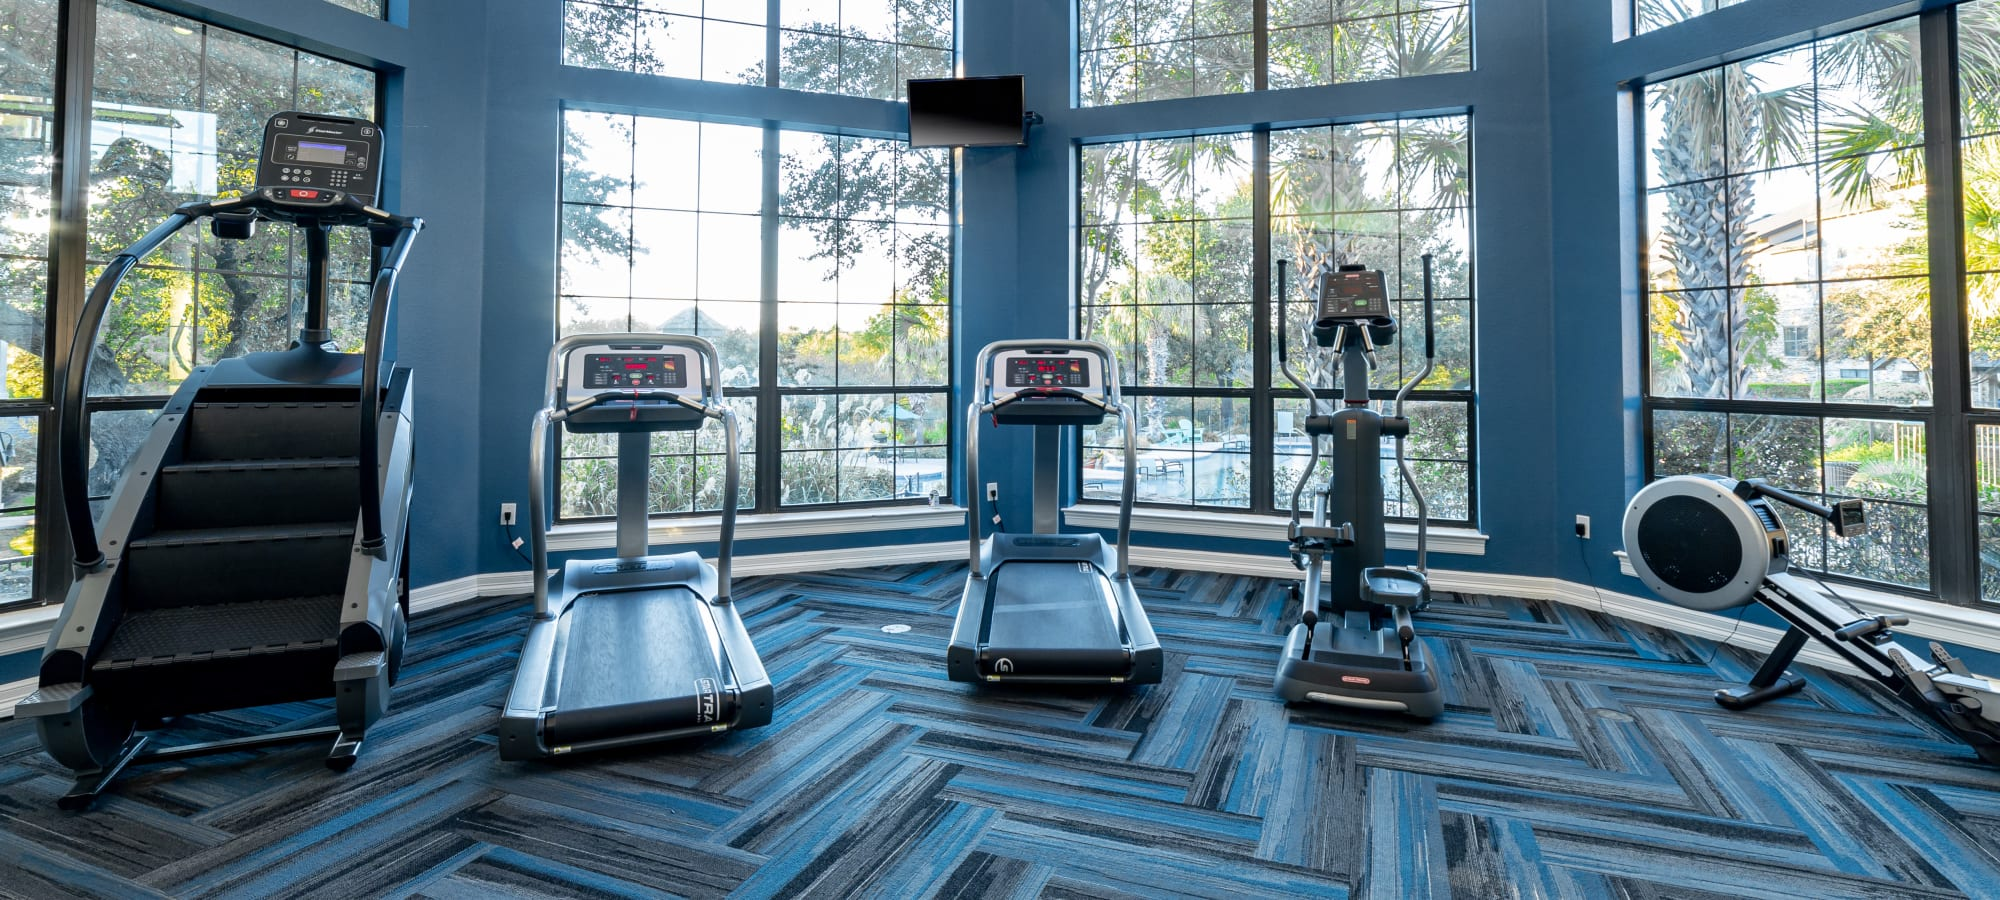 Amenities at Marquis Parkside in Austin, Texas